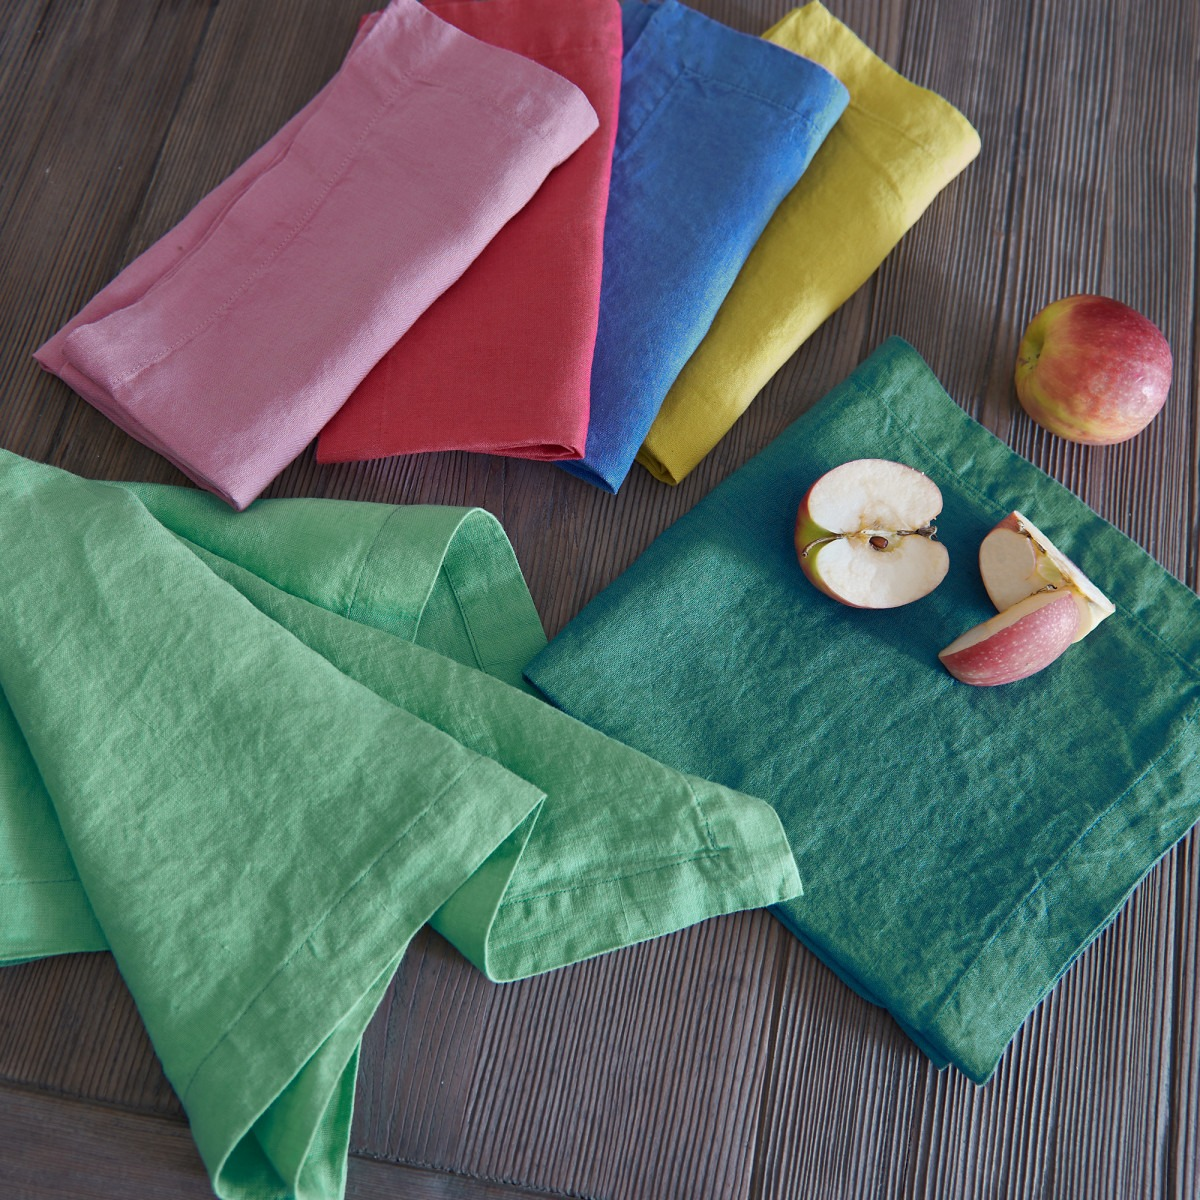 Washed Linen Bright Coloured Napkins